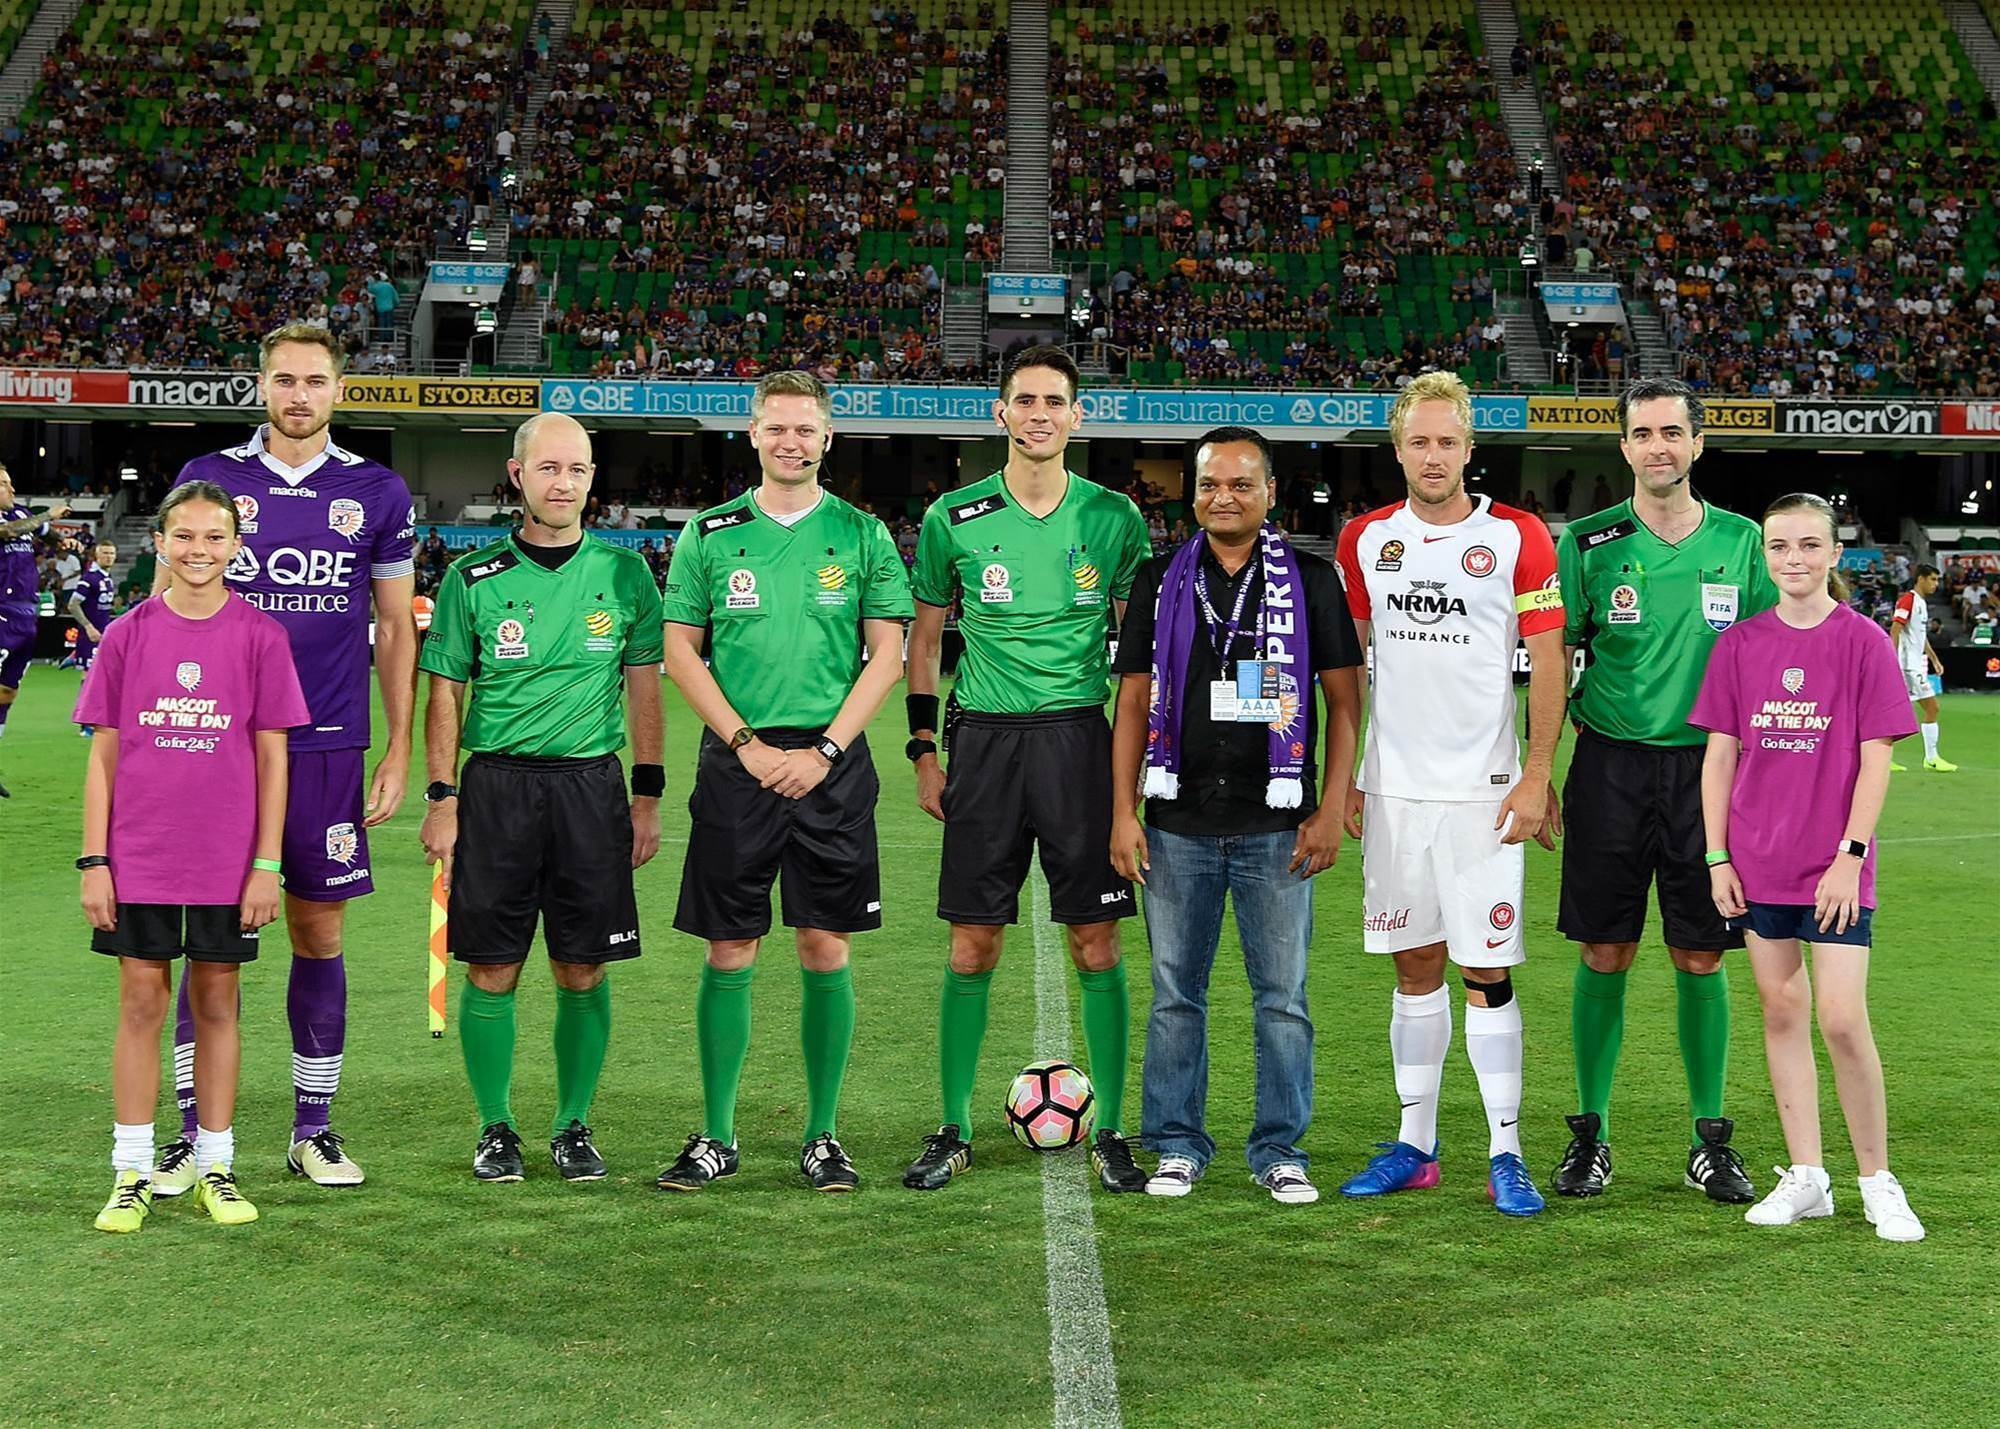 Glory v Wanderers pic special